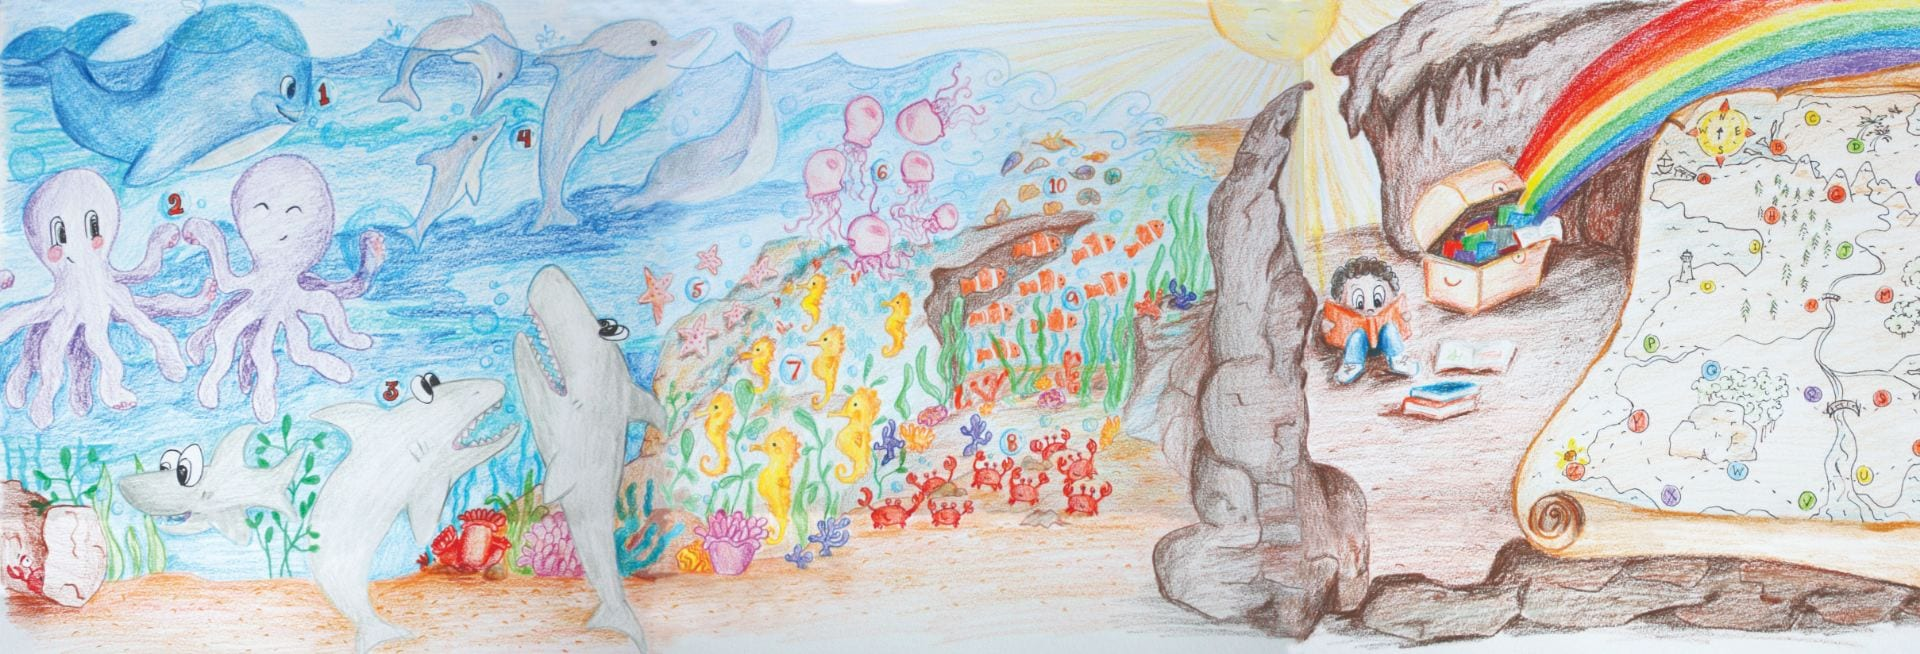 Renae McCollum started with a sketch for her mural project at Valley Health Center Bascom, a primary care clinic of Santa Clara Valley Medical Center: Hospitals and Clinics.